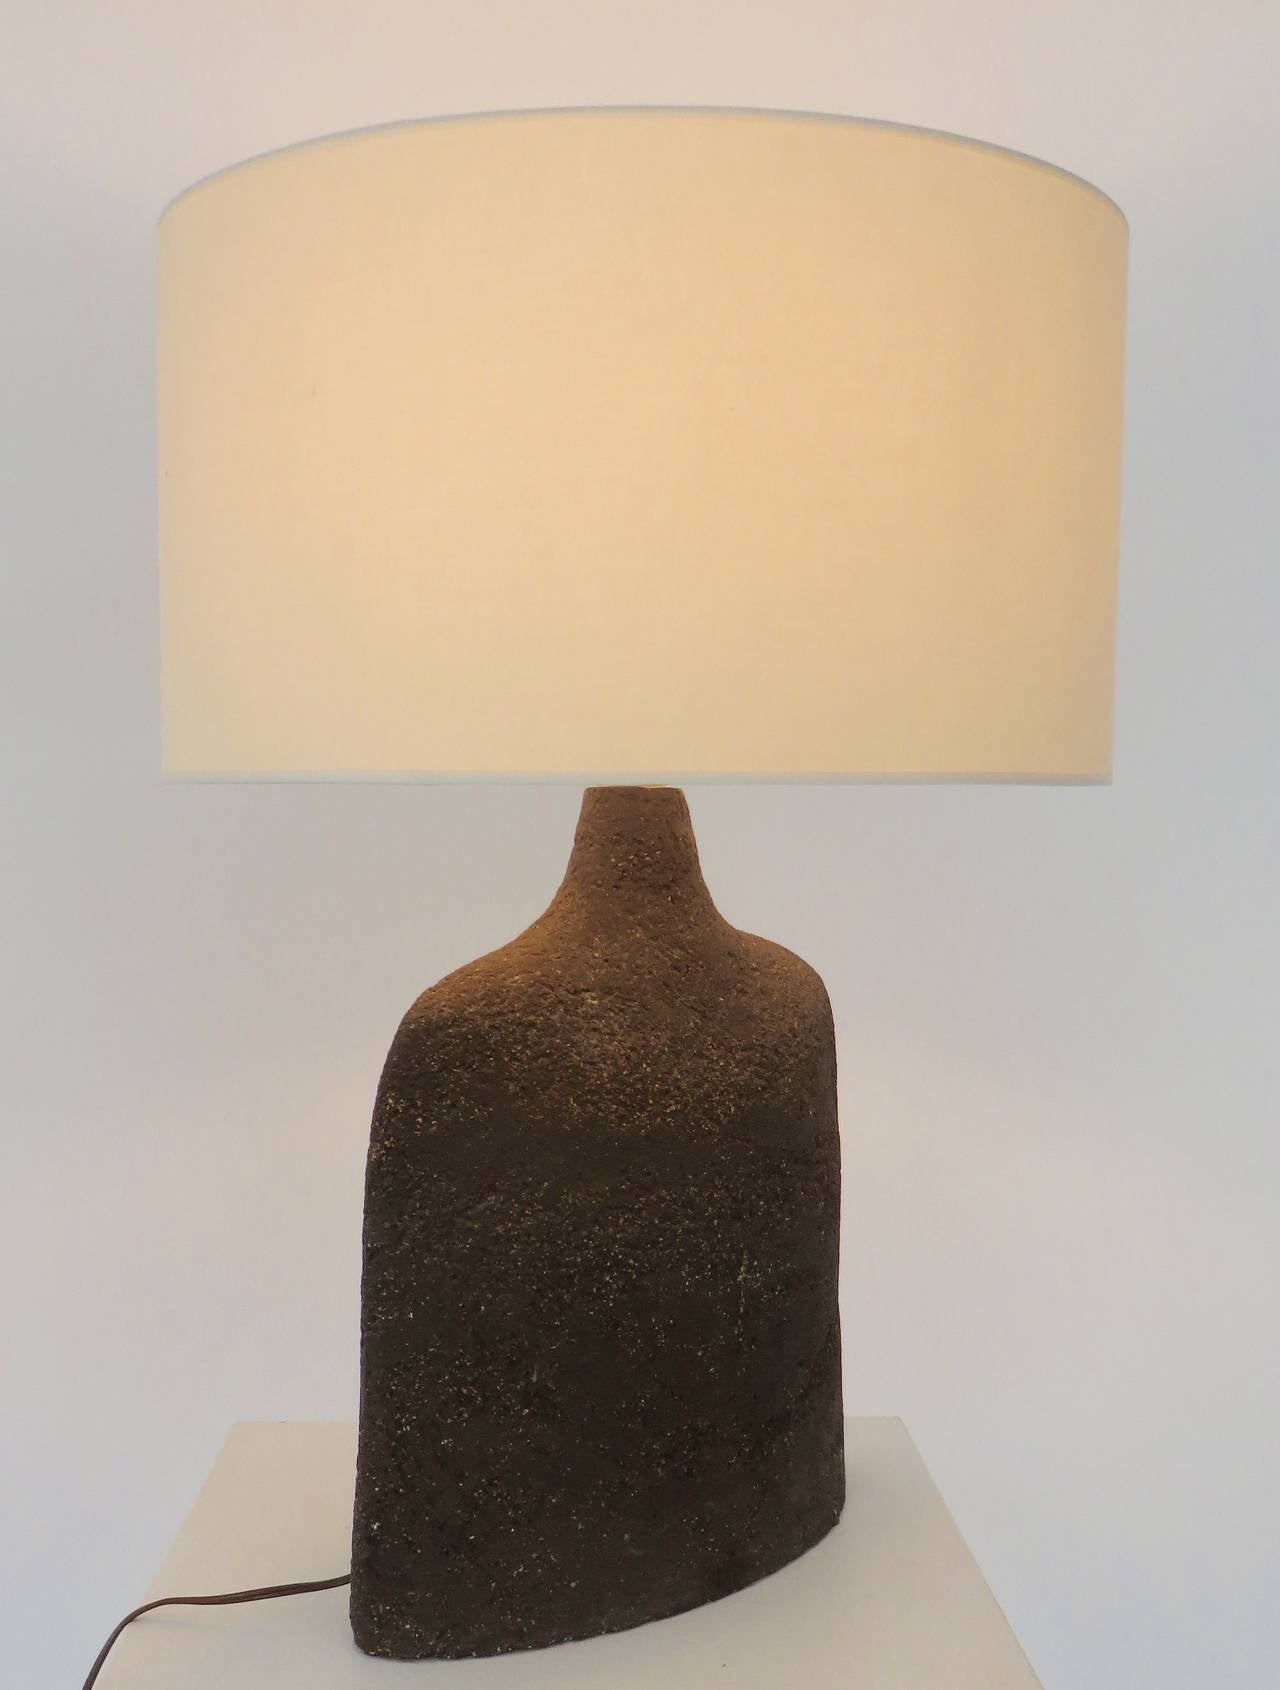 Superbe Mid 20th Century French Ceramic Table Lamp In Dark Brown Heavily Textured  Clay For Sale